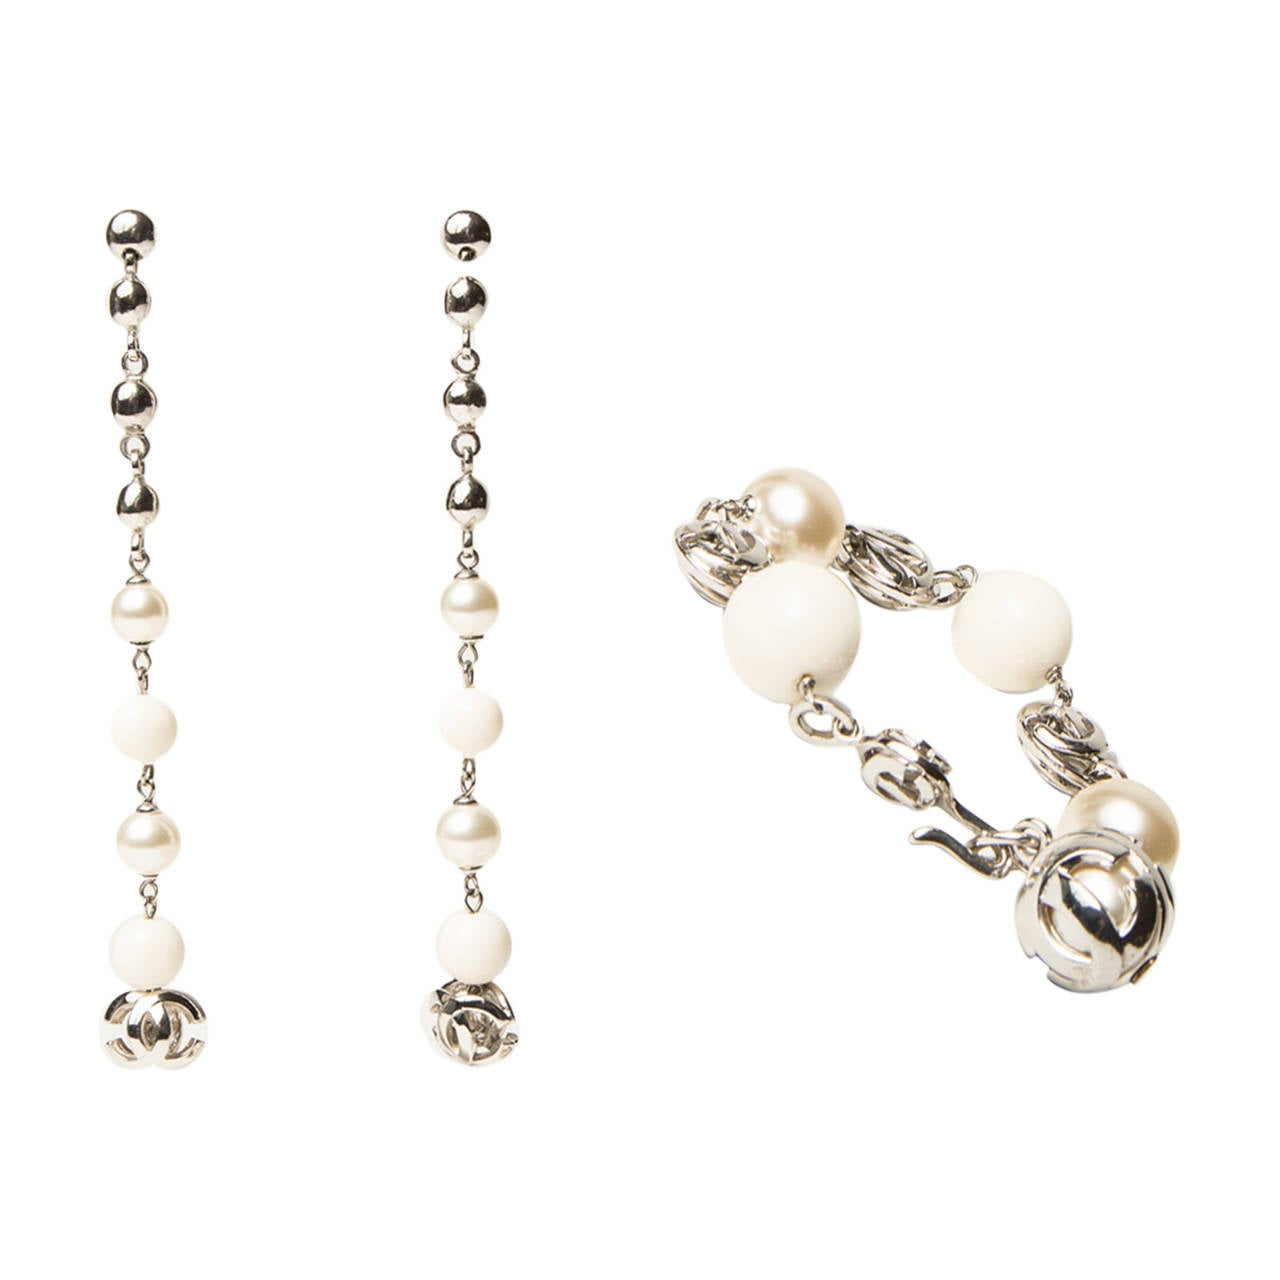 Chanel Pearl Earring and Bracelet Set For Sale